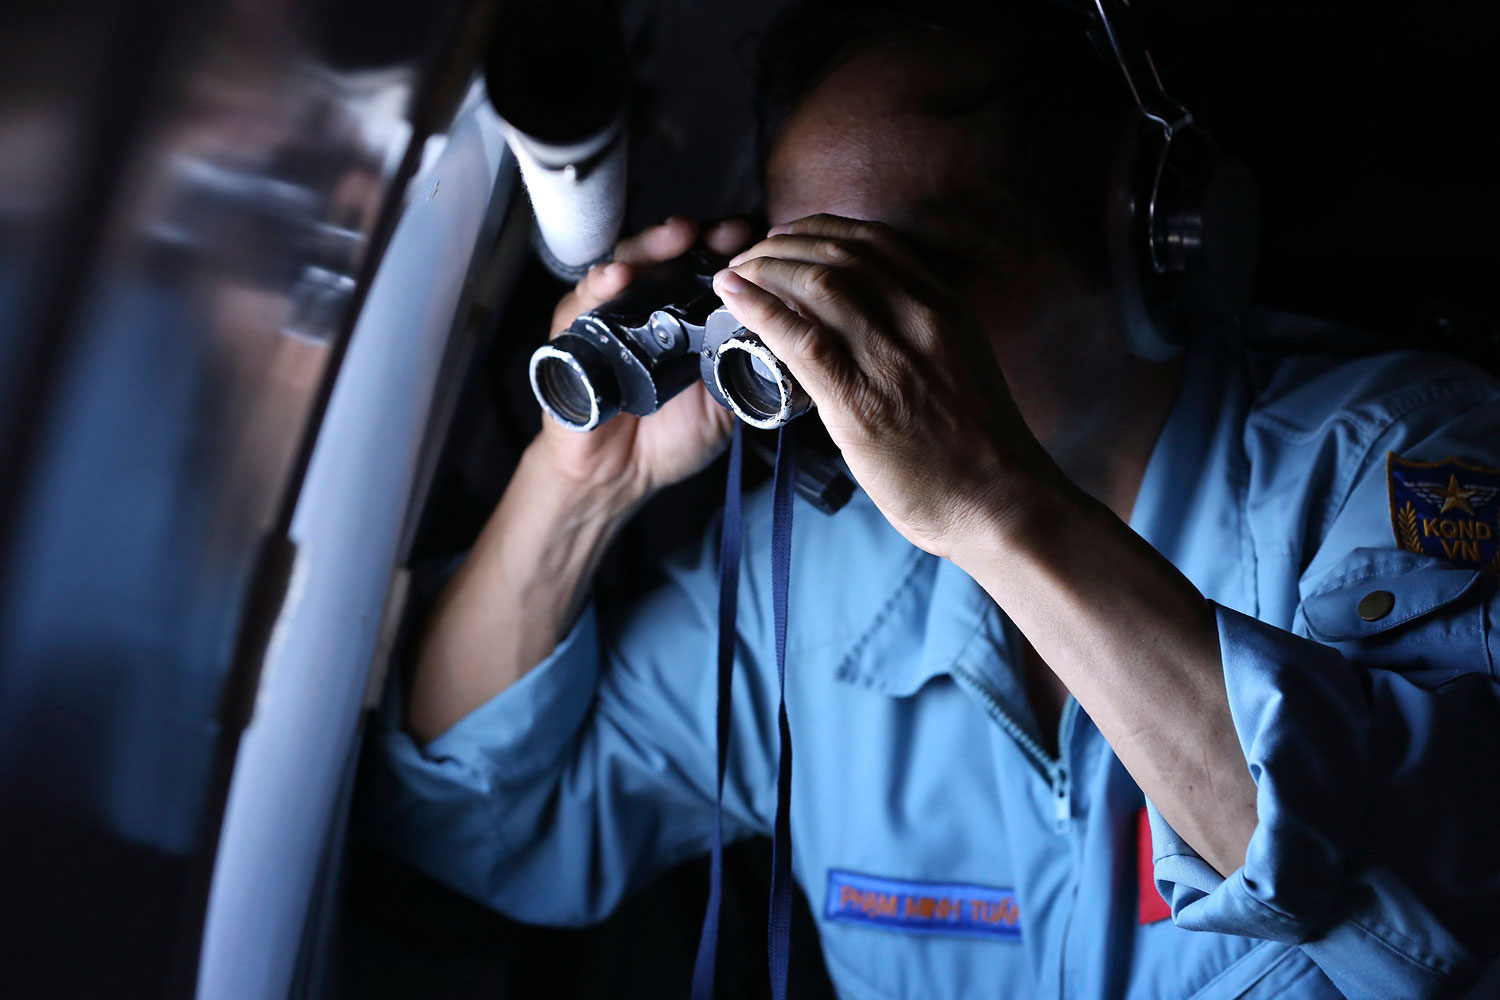 Vietnamese Air Force Col. Pham Minh Tuan uses binoculars on board an aircraft during a mission to search for the missing Malaysia Airlines Flight 370 in the Gulf of Thailand, on March 13, 2014.